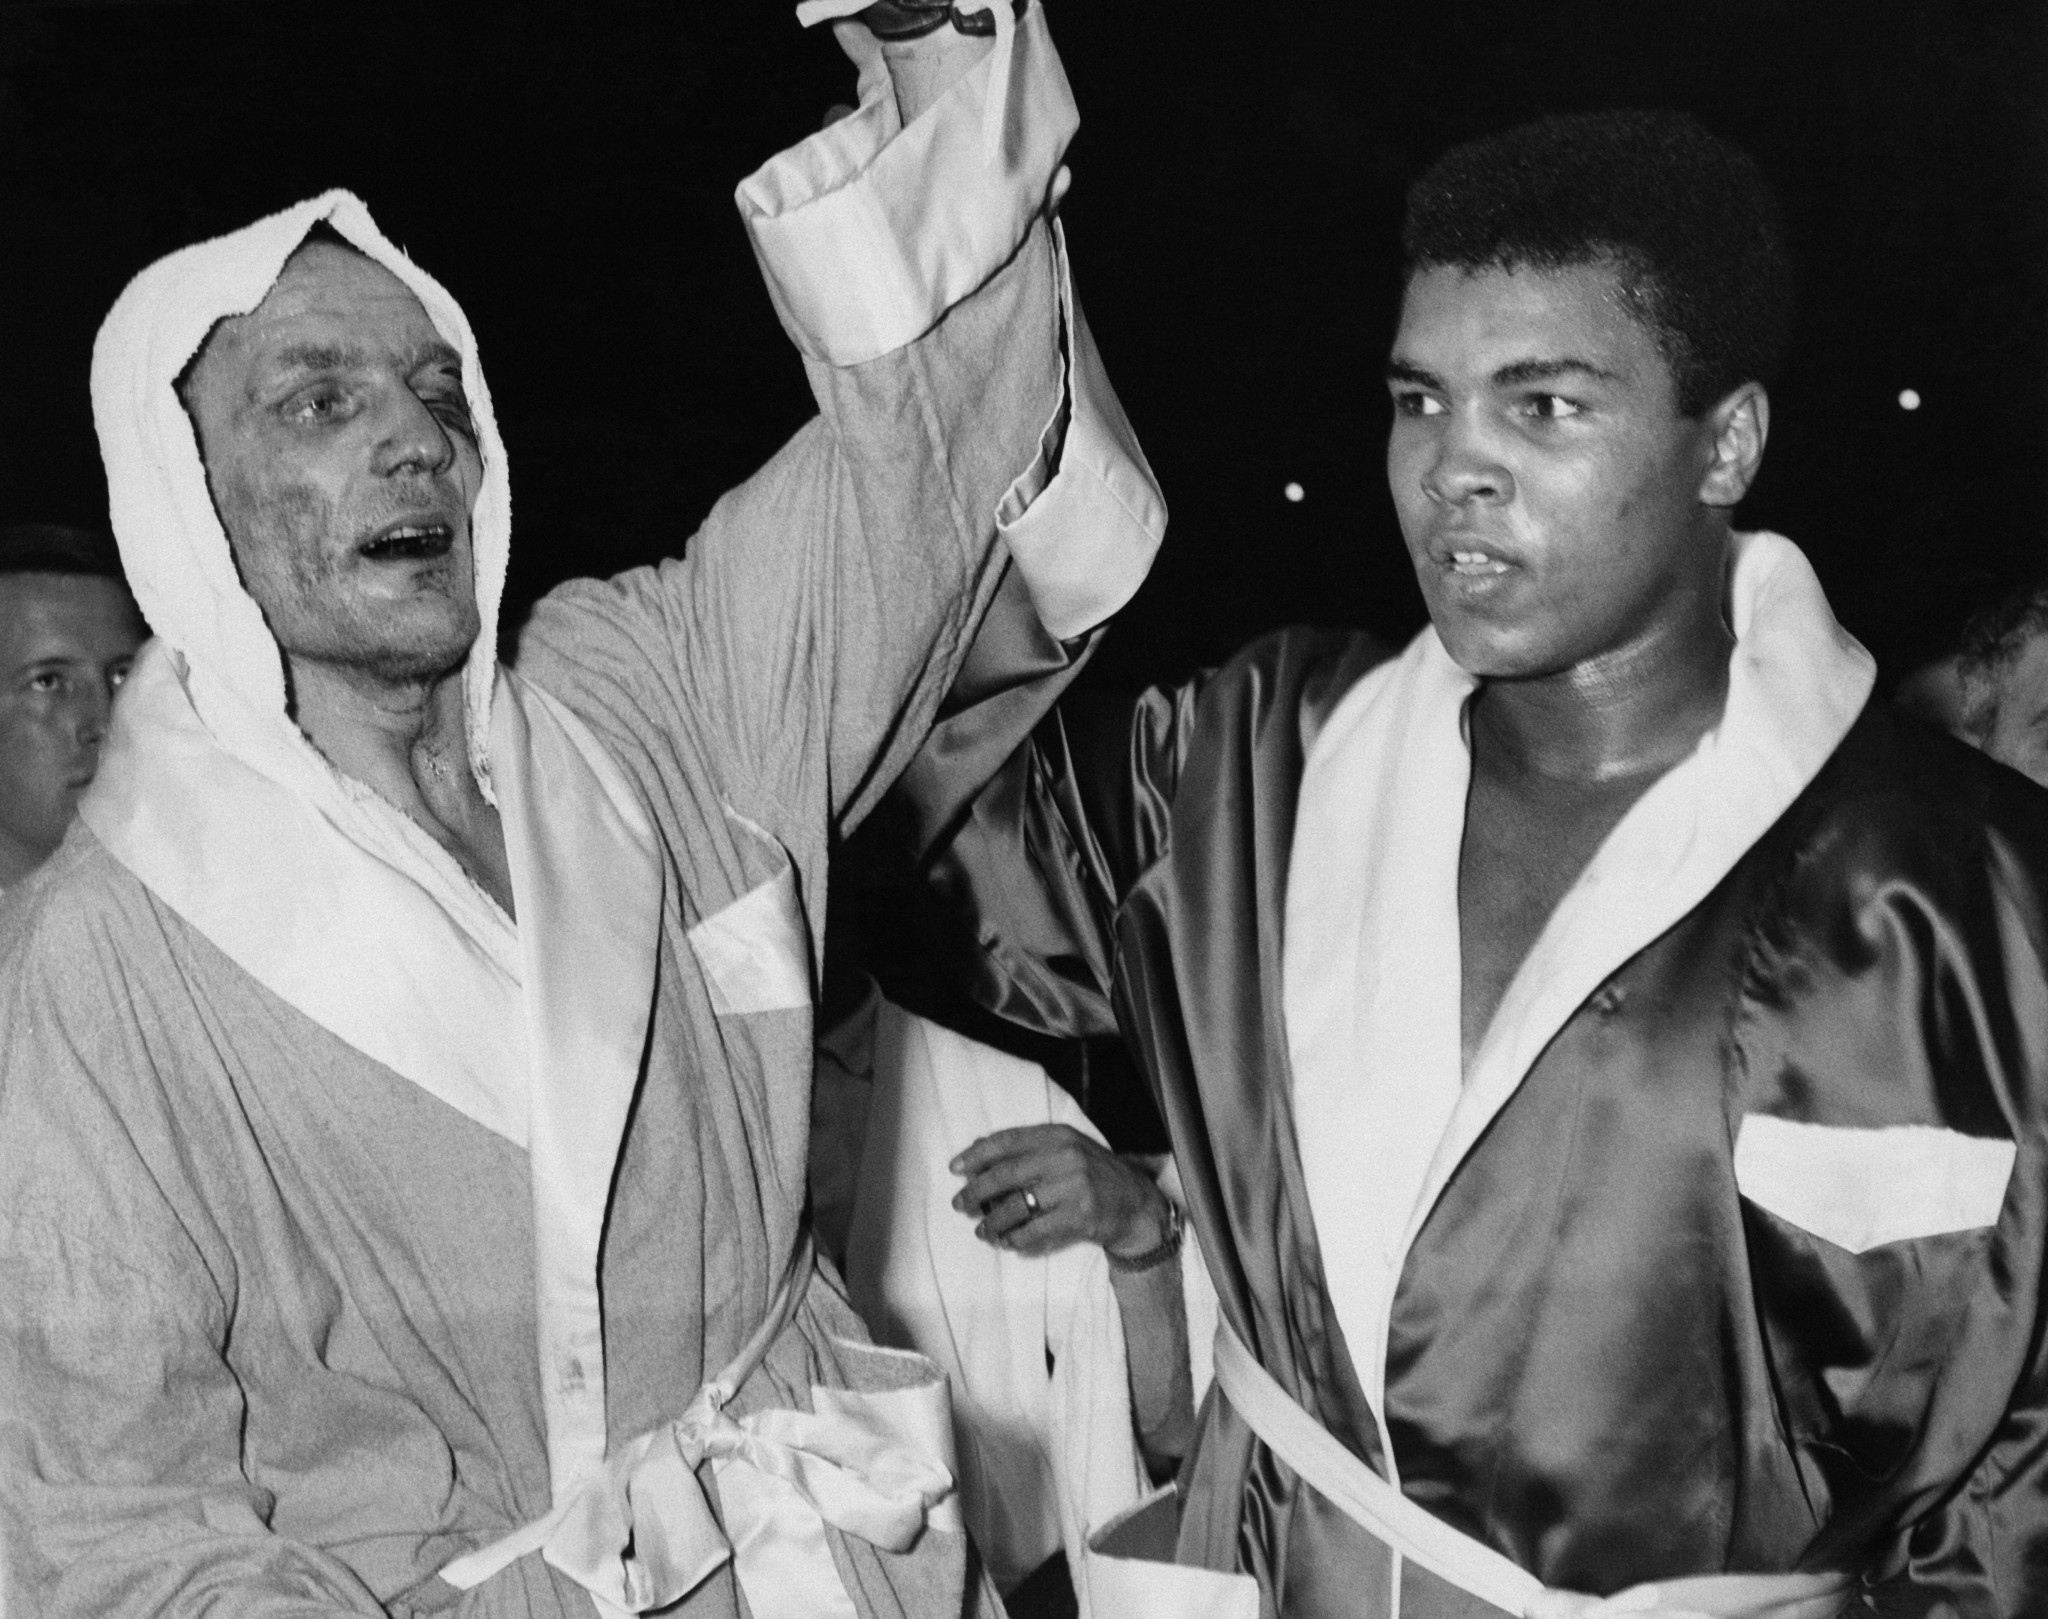 Sir Henry Cooper put Cassius Clay on his backside in 1963 and showed great courage in defeat ©Getty Images